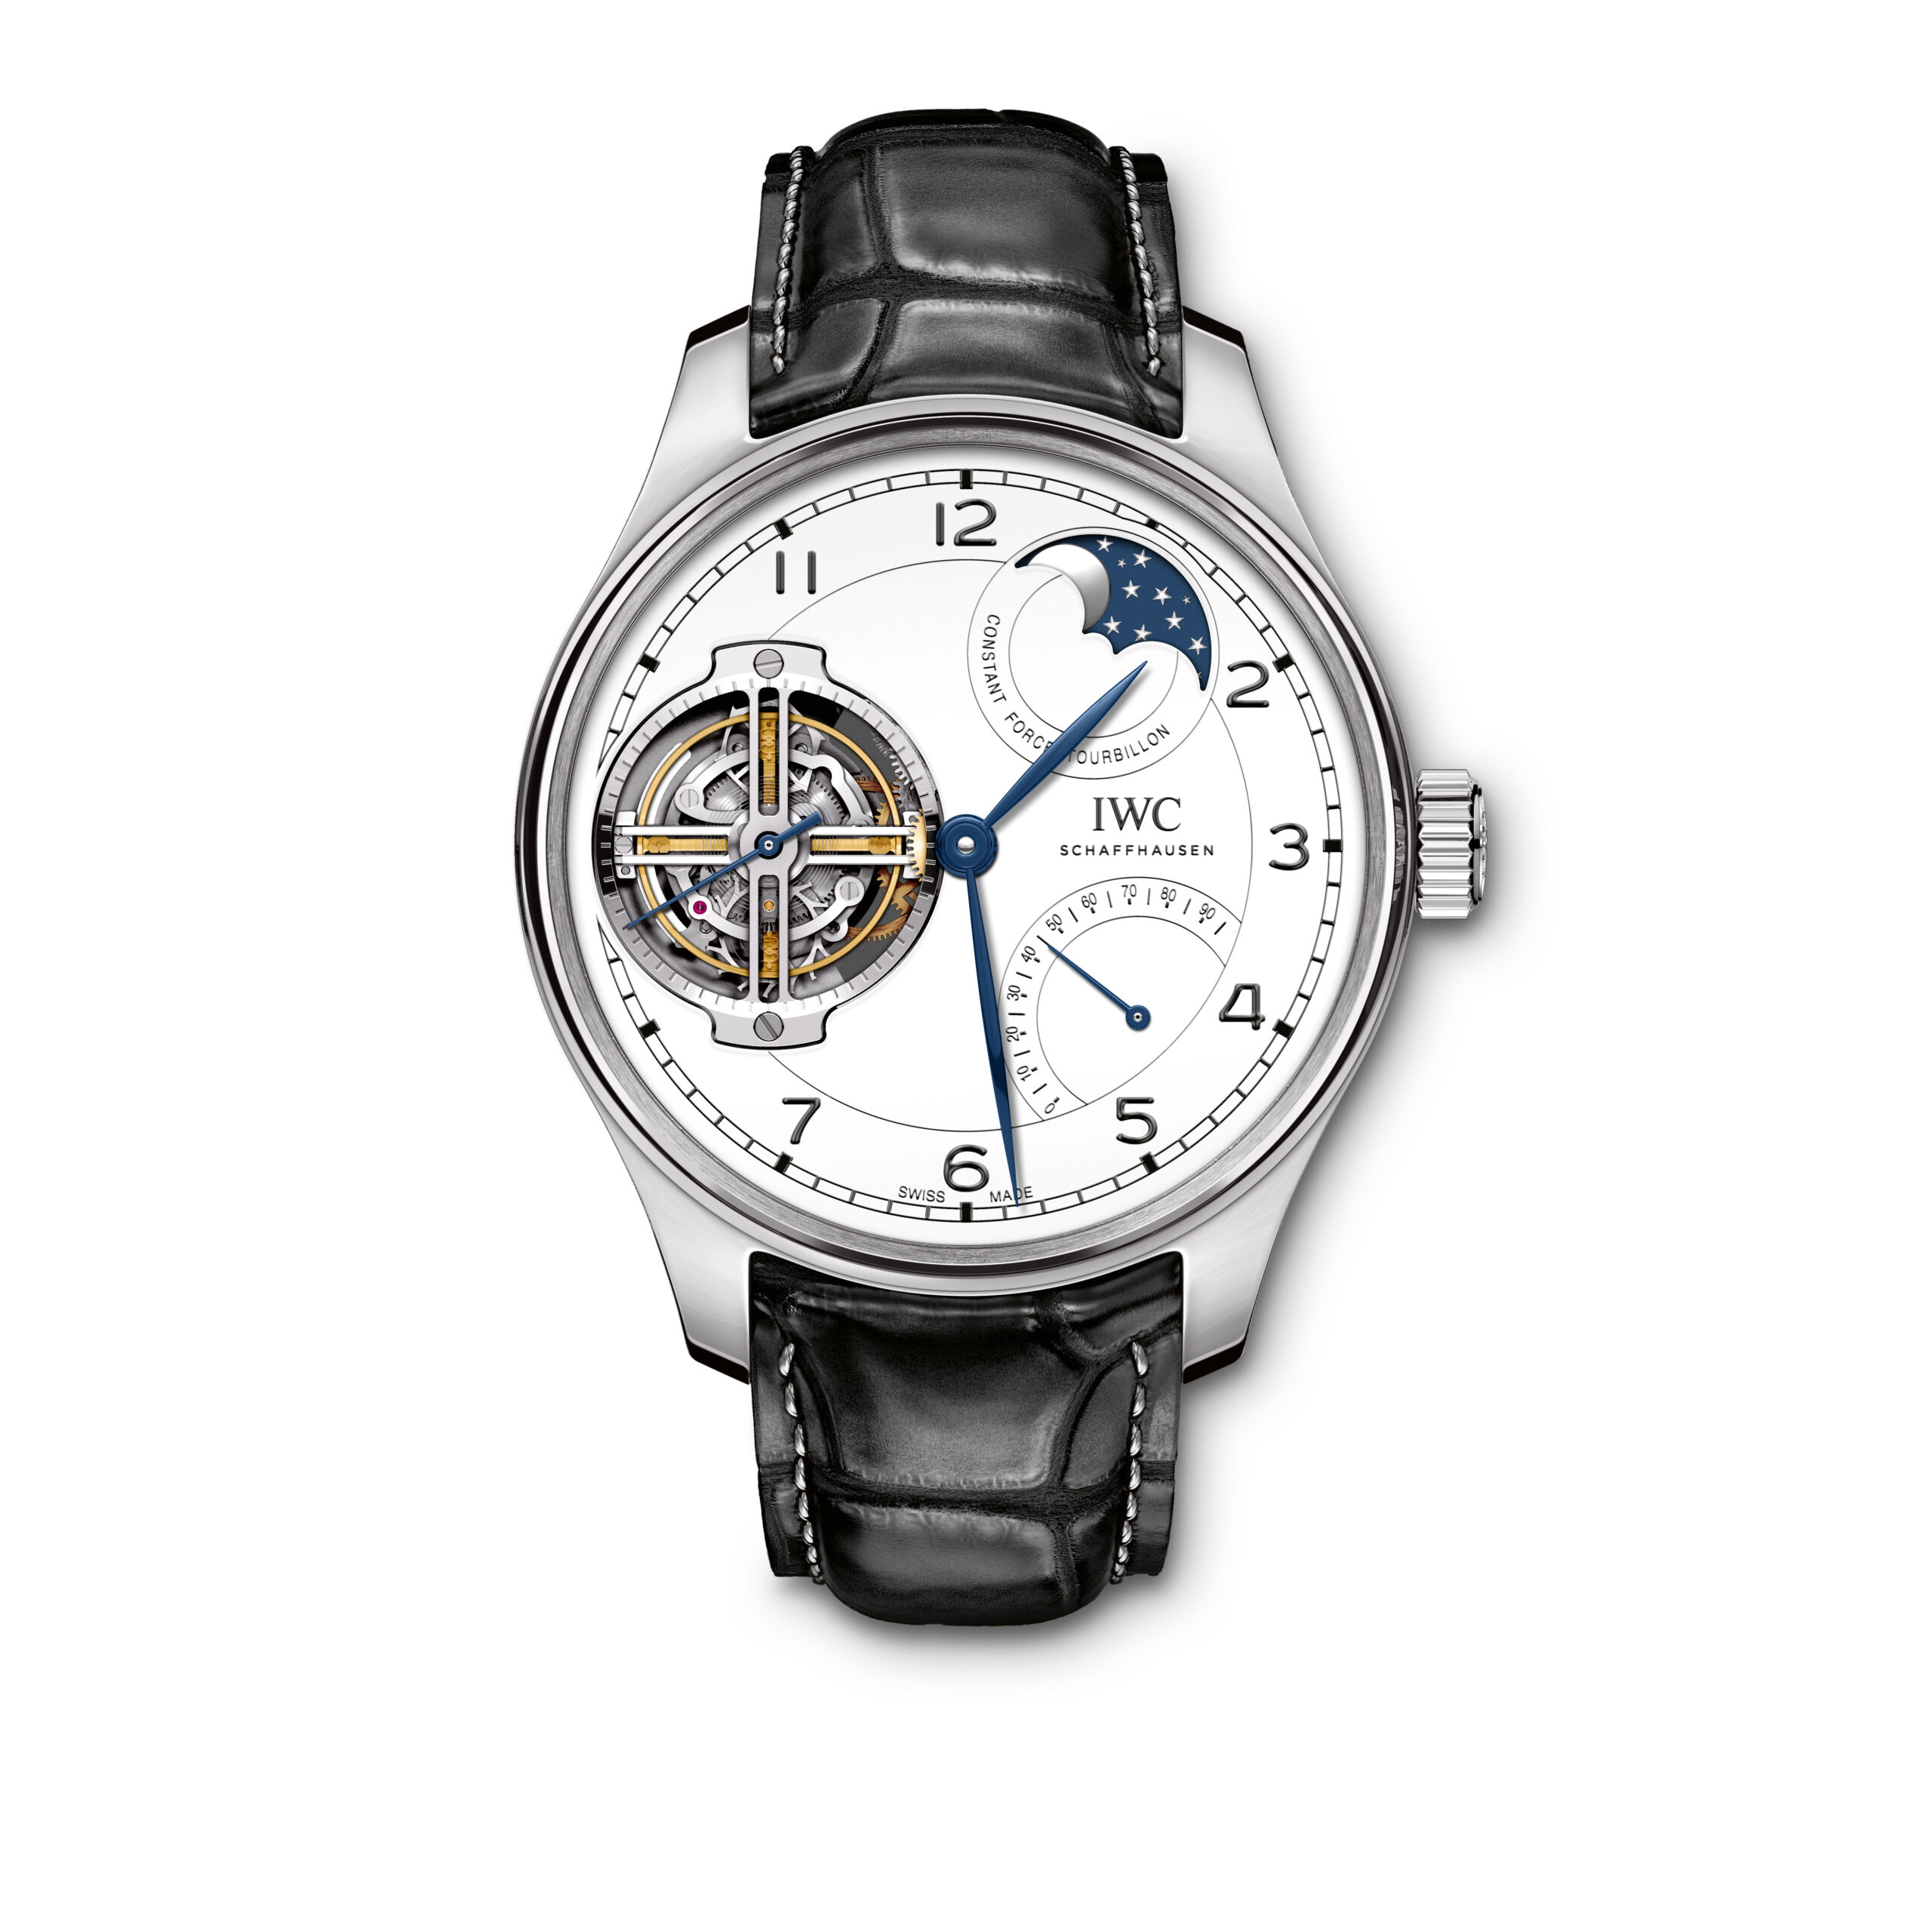 "IWC Portugieser Constant-Force Tourbillon Edition ""150 Years"" (Ref. 5902) Platinum, white dial with lacquered  nish, blued hands"